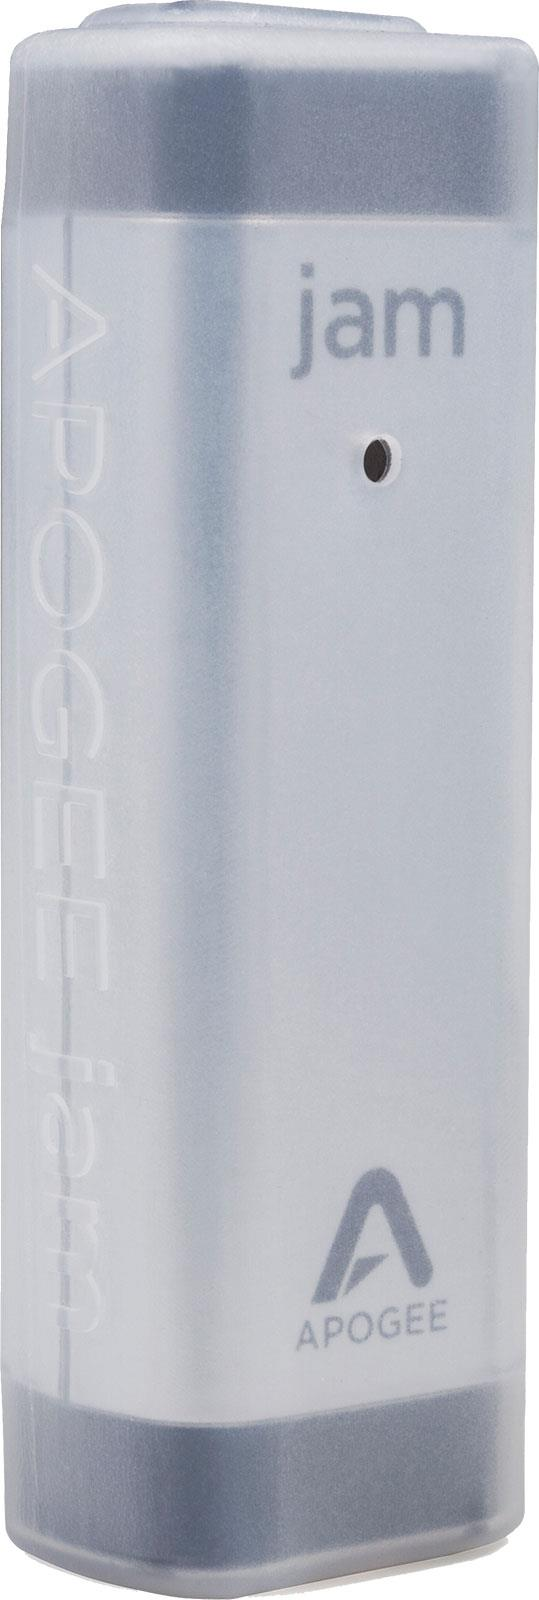 Image of Apogee Jam Cover Clear 0805676301242